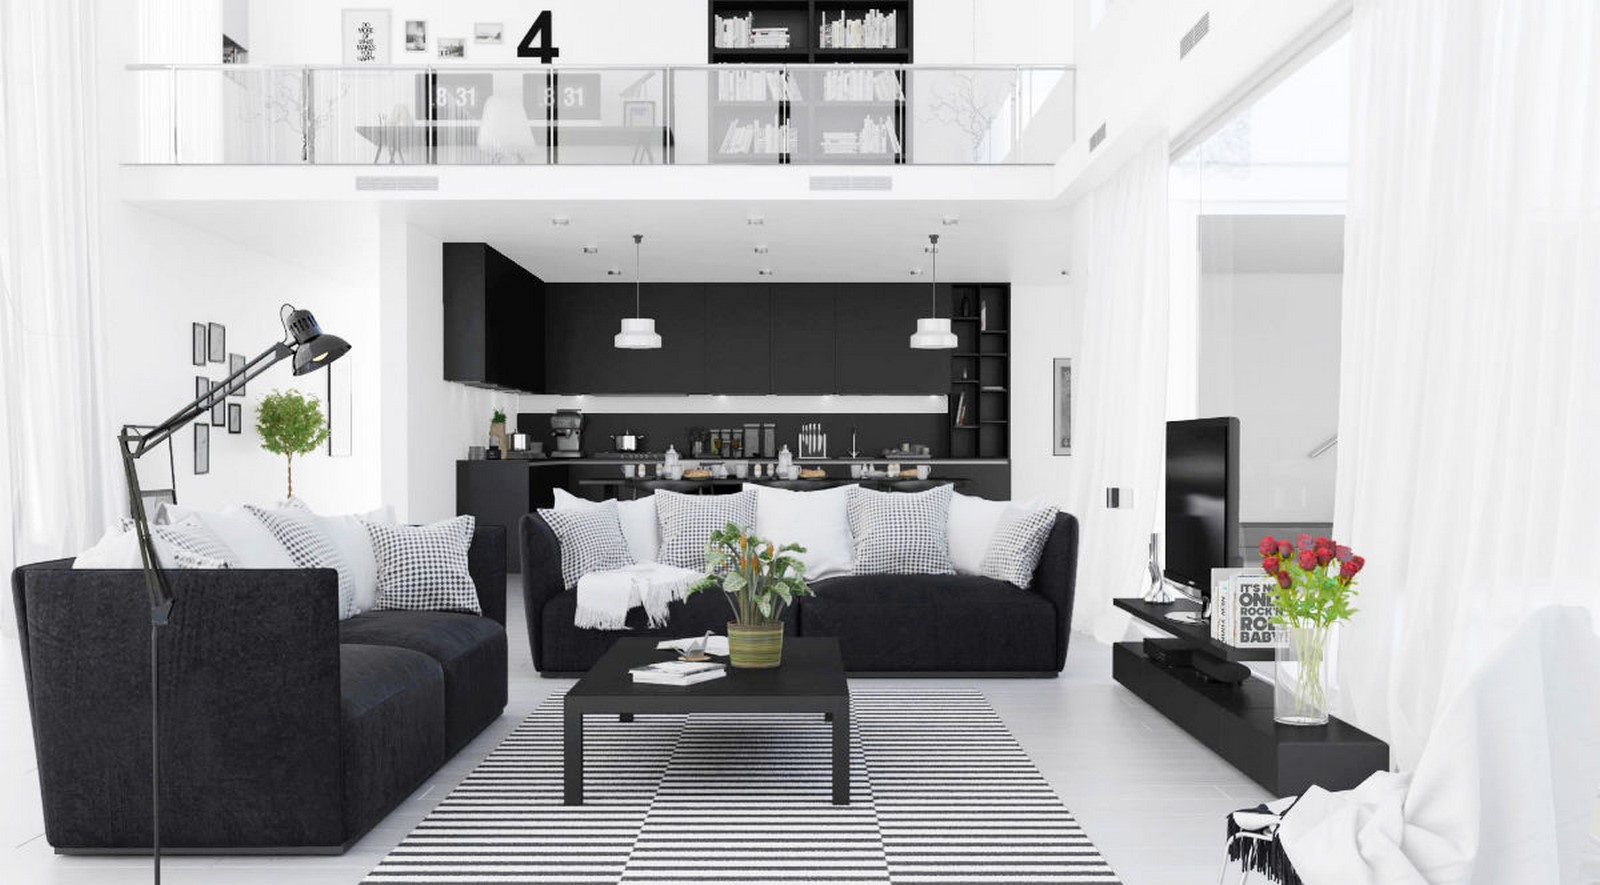 How to incorporate neutral colors into your home? - Sheet9